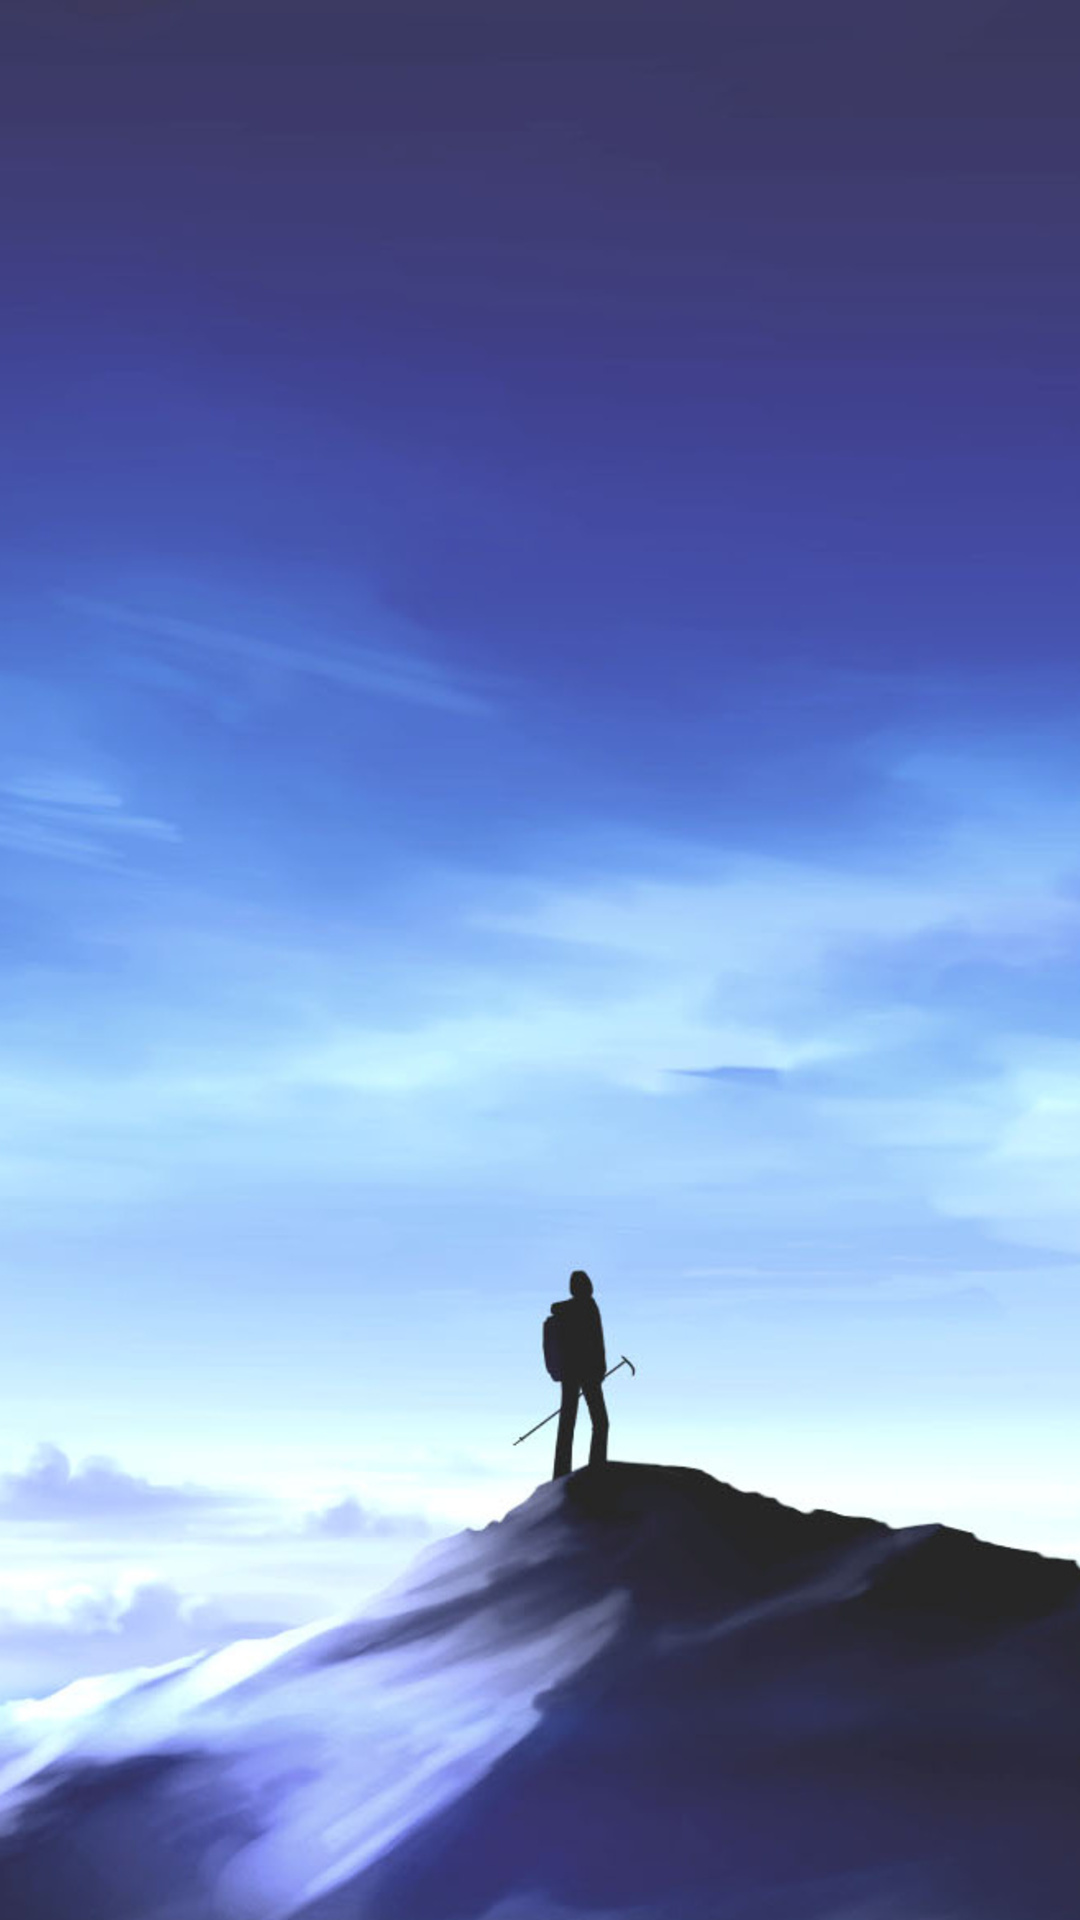 anime-original-standing-on-mountain-top-8a.jpg